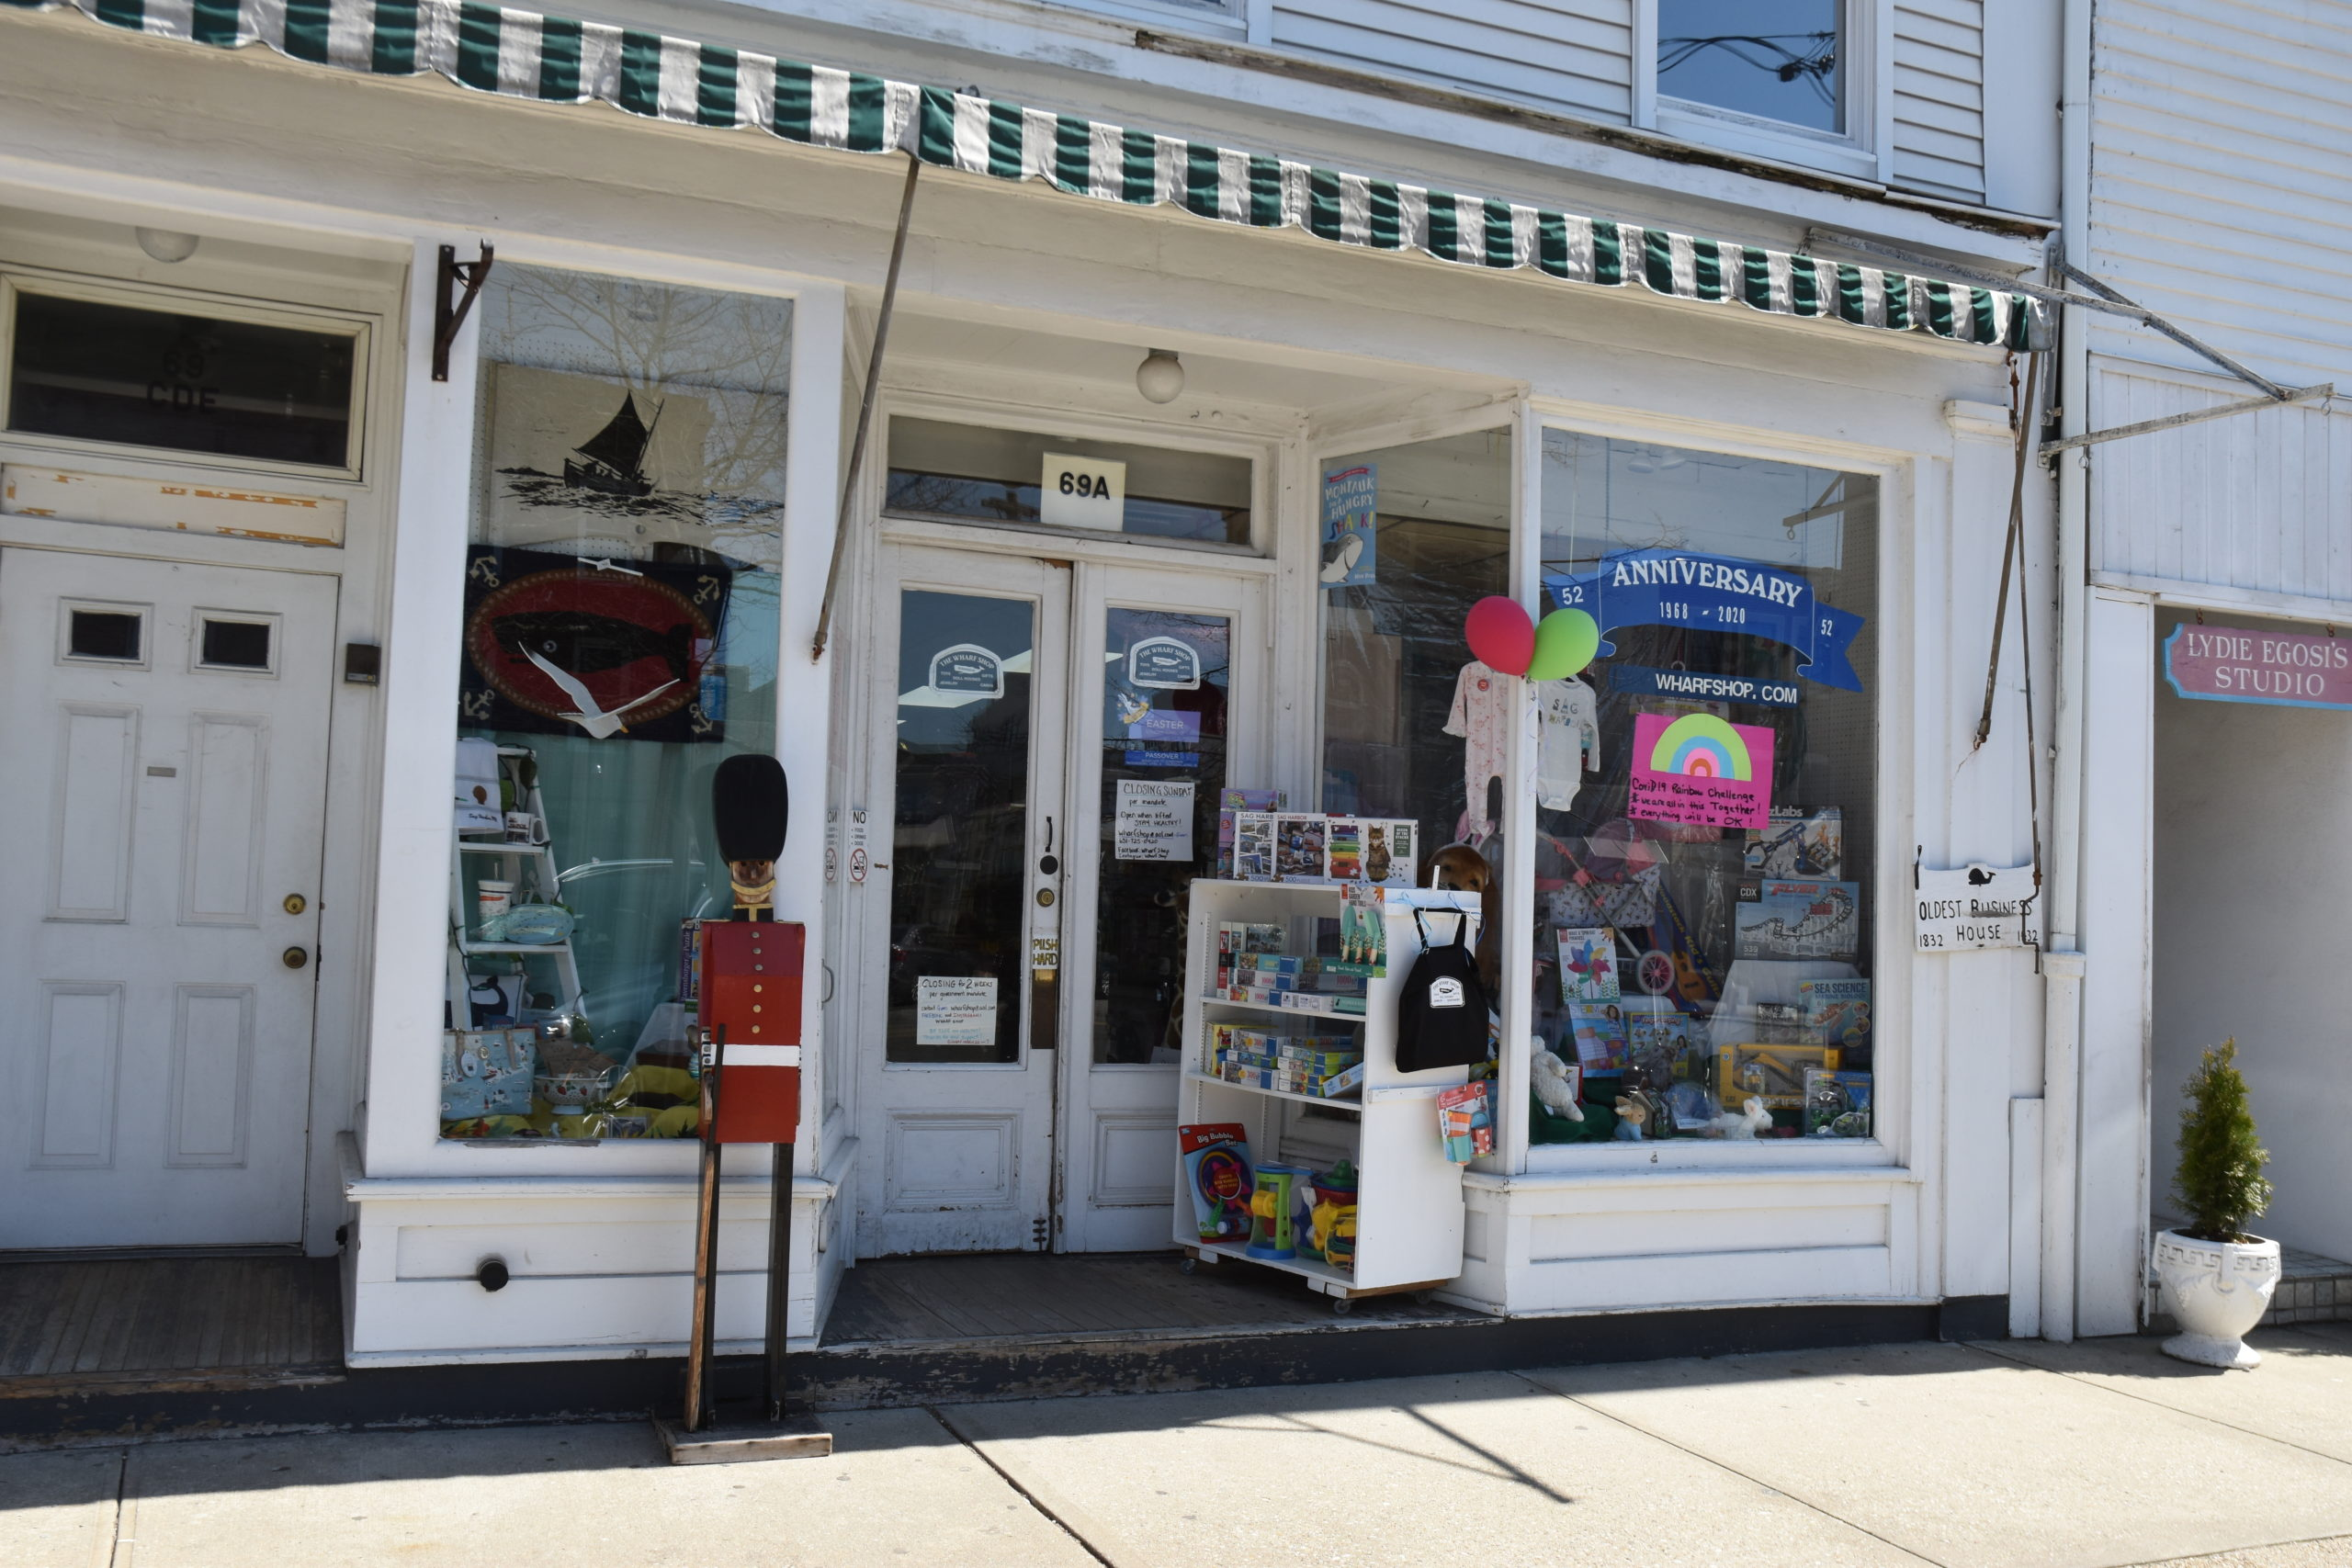 The Wharf Shop, a popular toy store in Sag Harbor, was one of scores of local businesses to close following Governor Cuomo's order. STEPHEN J. KOTZ